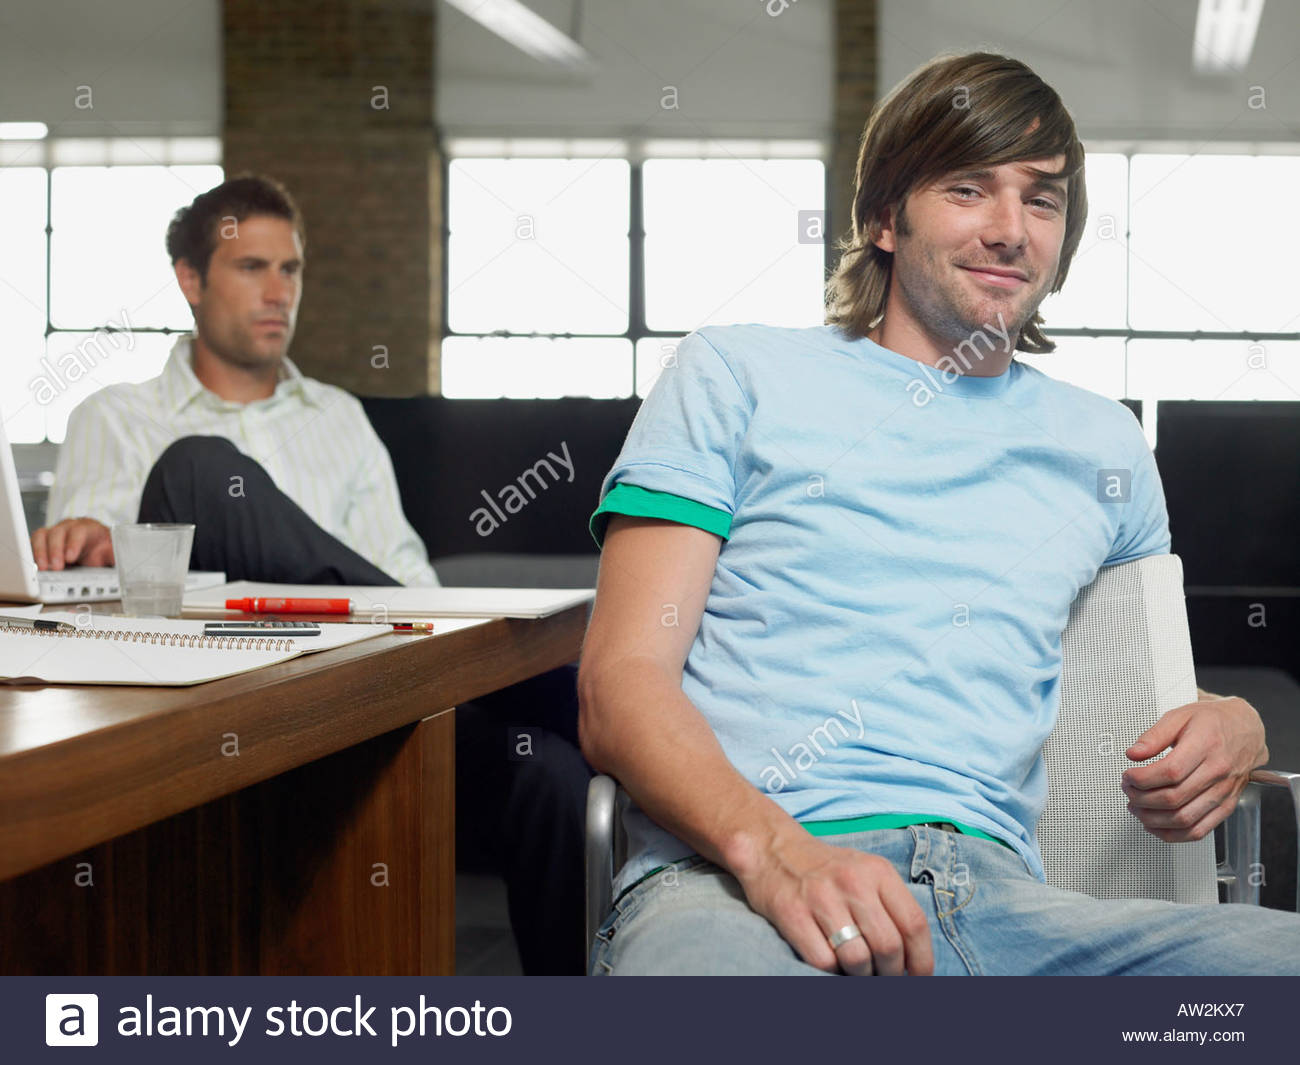 Two male media workers - Stock Image